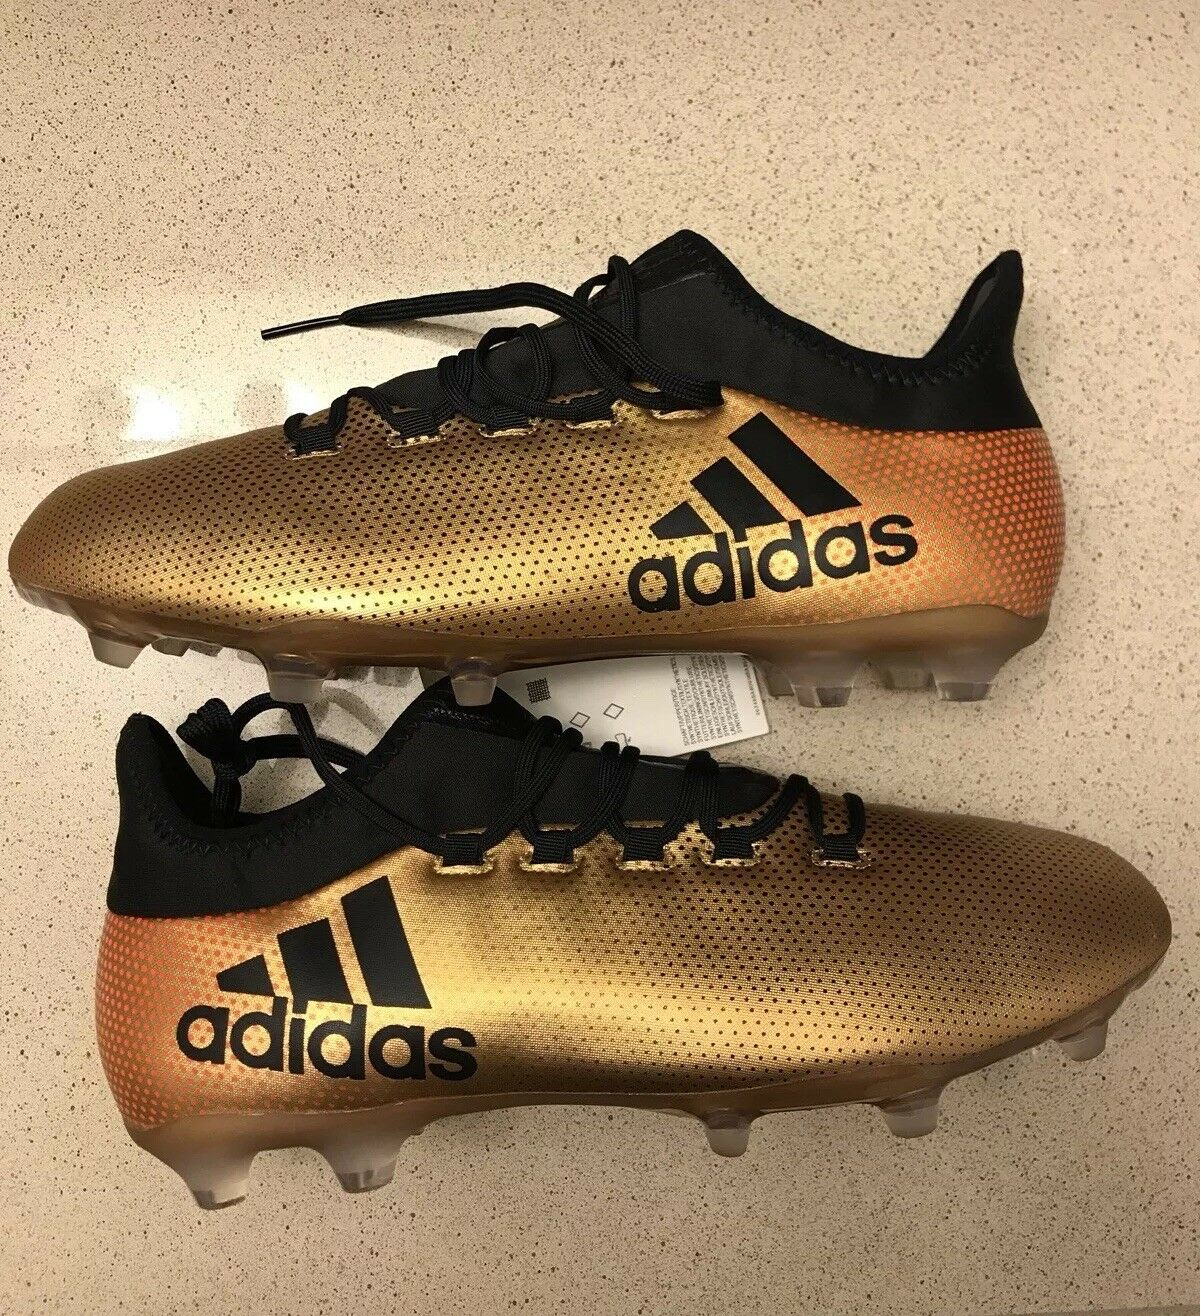 NEW Adidas X17.2 FAG gold BLACK SOCCER CLEATS (SIZE 10) () 5198ede0436e9